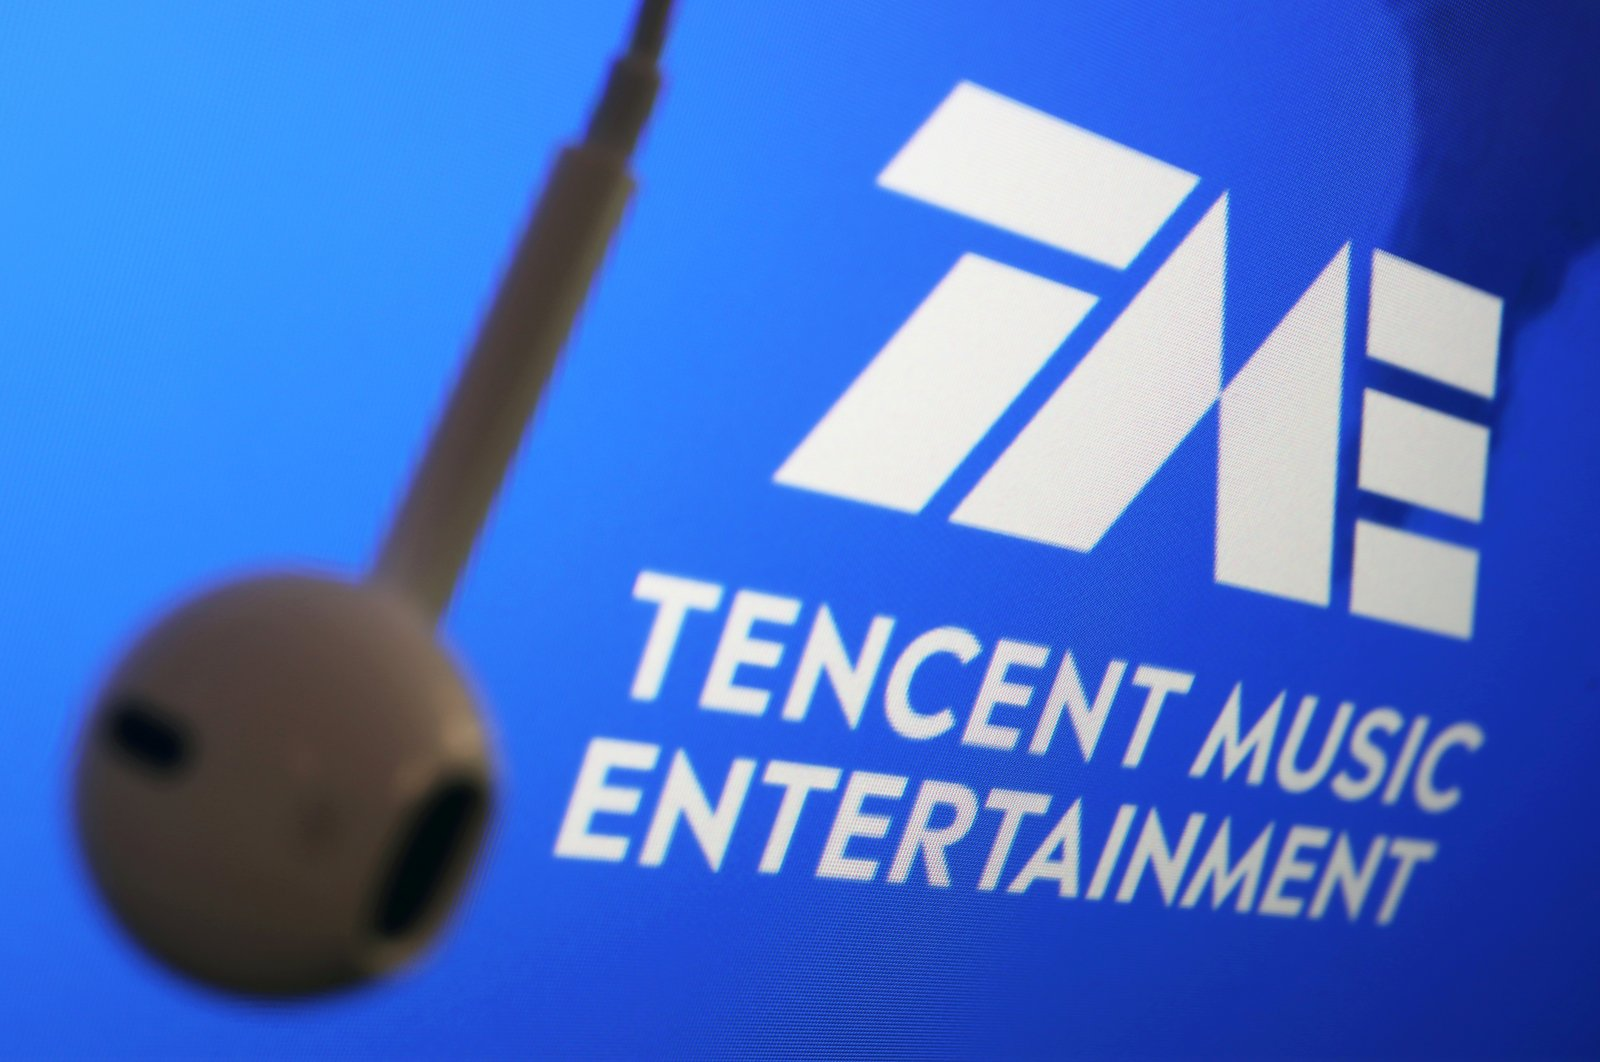 The logo of China's Tencent Music Entertainment Group is seen next to an earphone in this illustration picture taken March 22, 2021. (Reuters Photo)